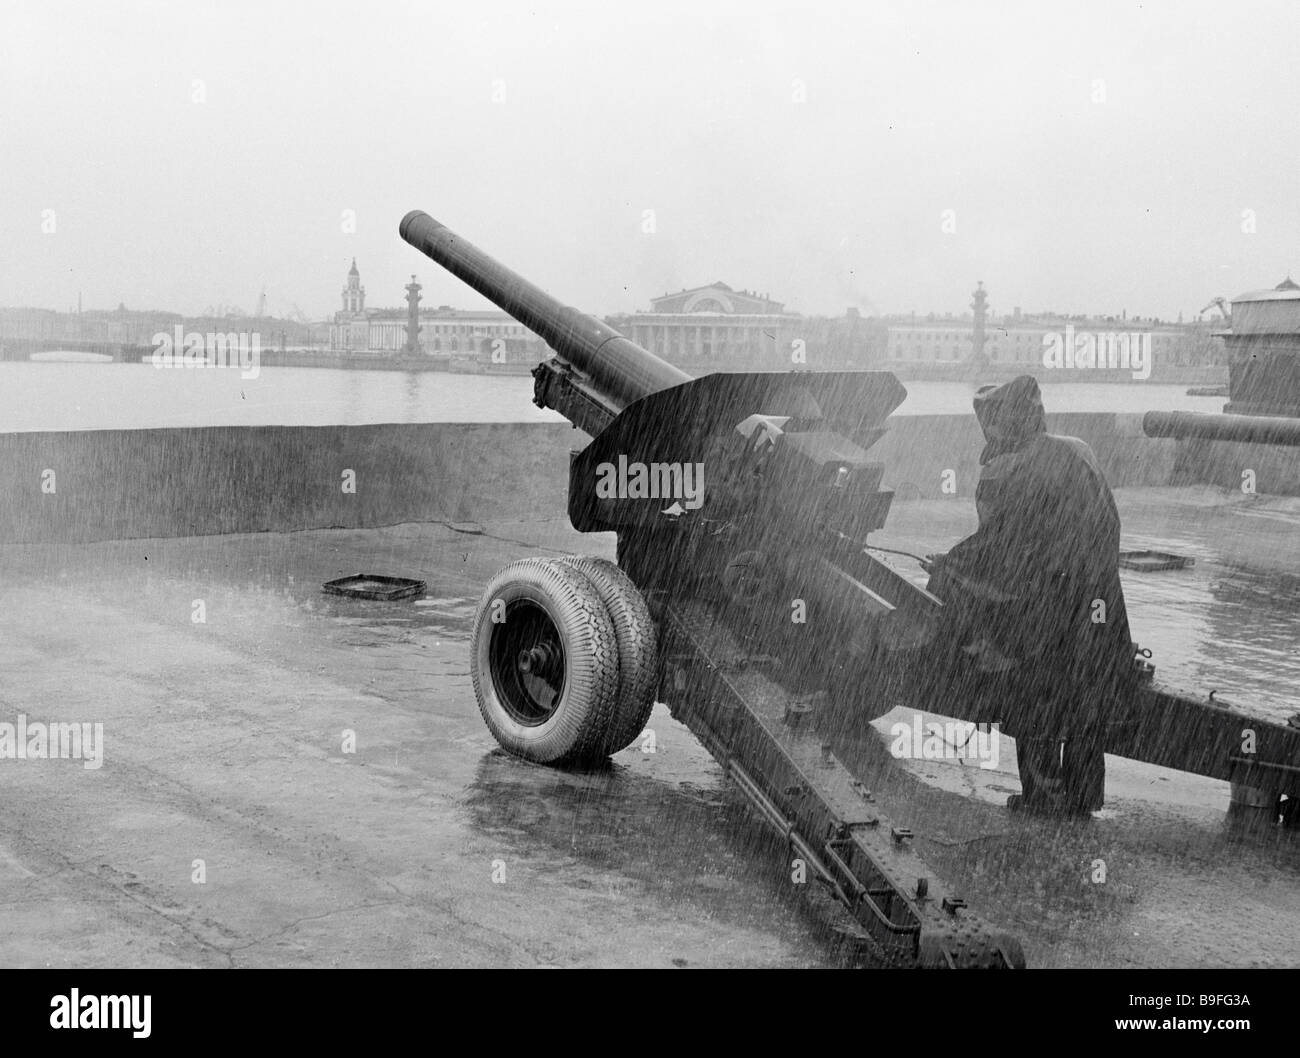 An artilleryman firing a cannon at noon on a bastion in the Peter and Paul Fortress - Stock Image